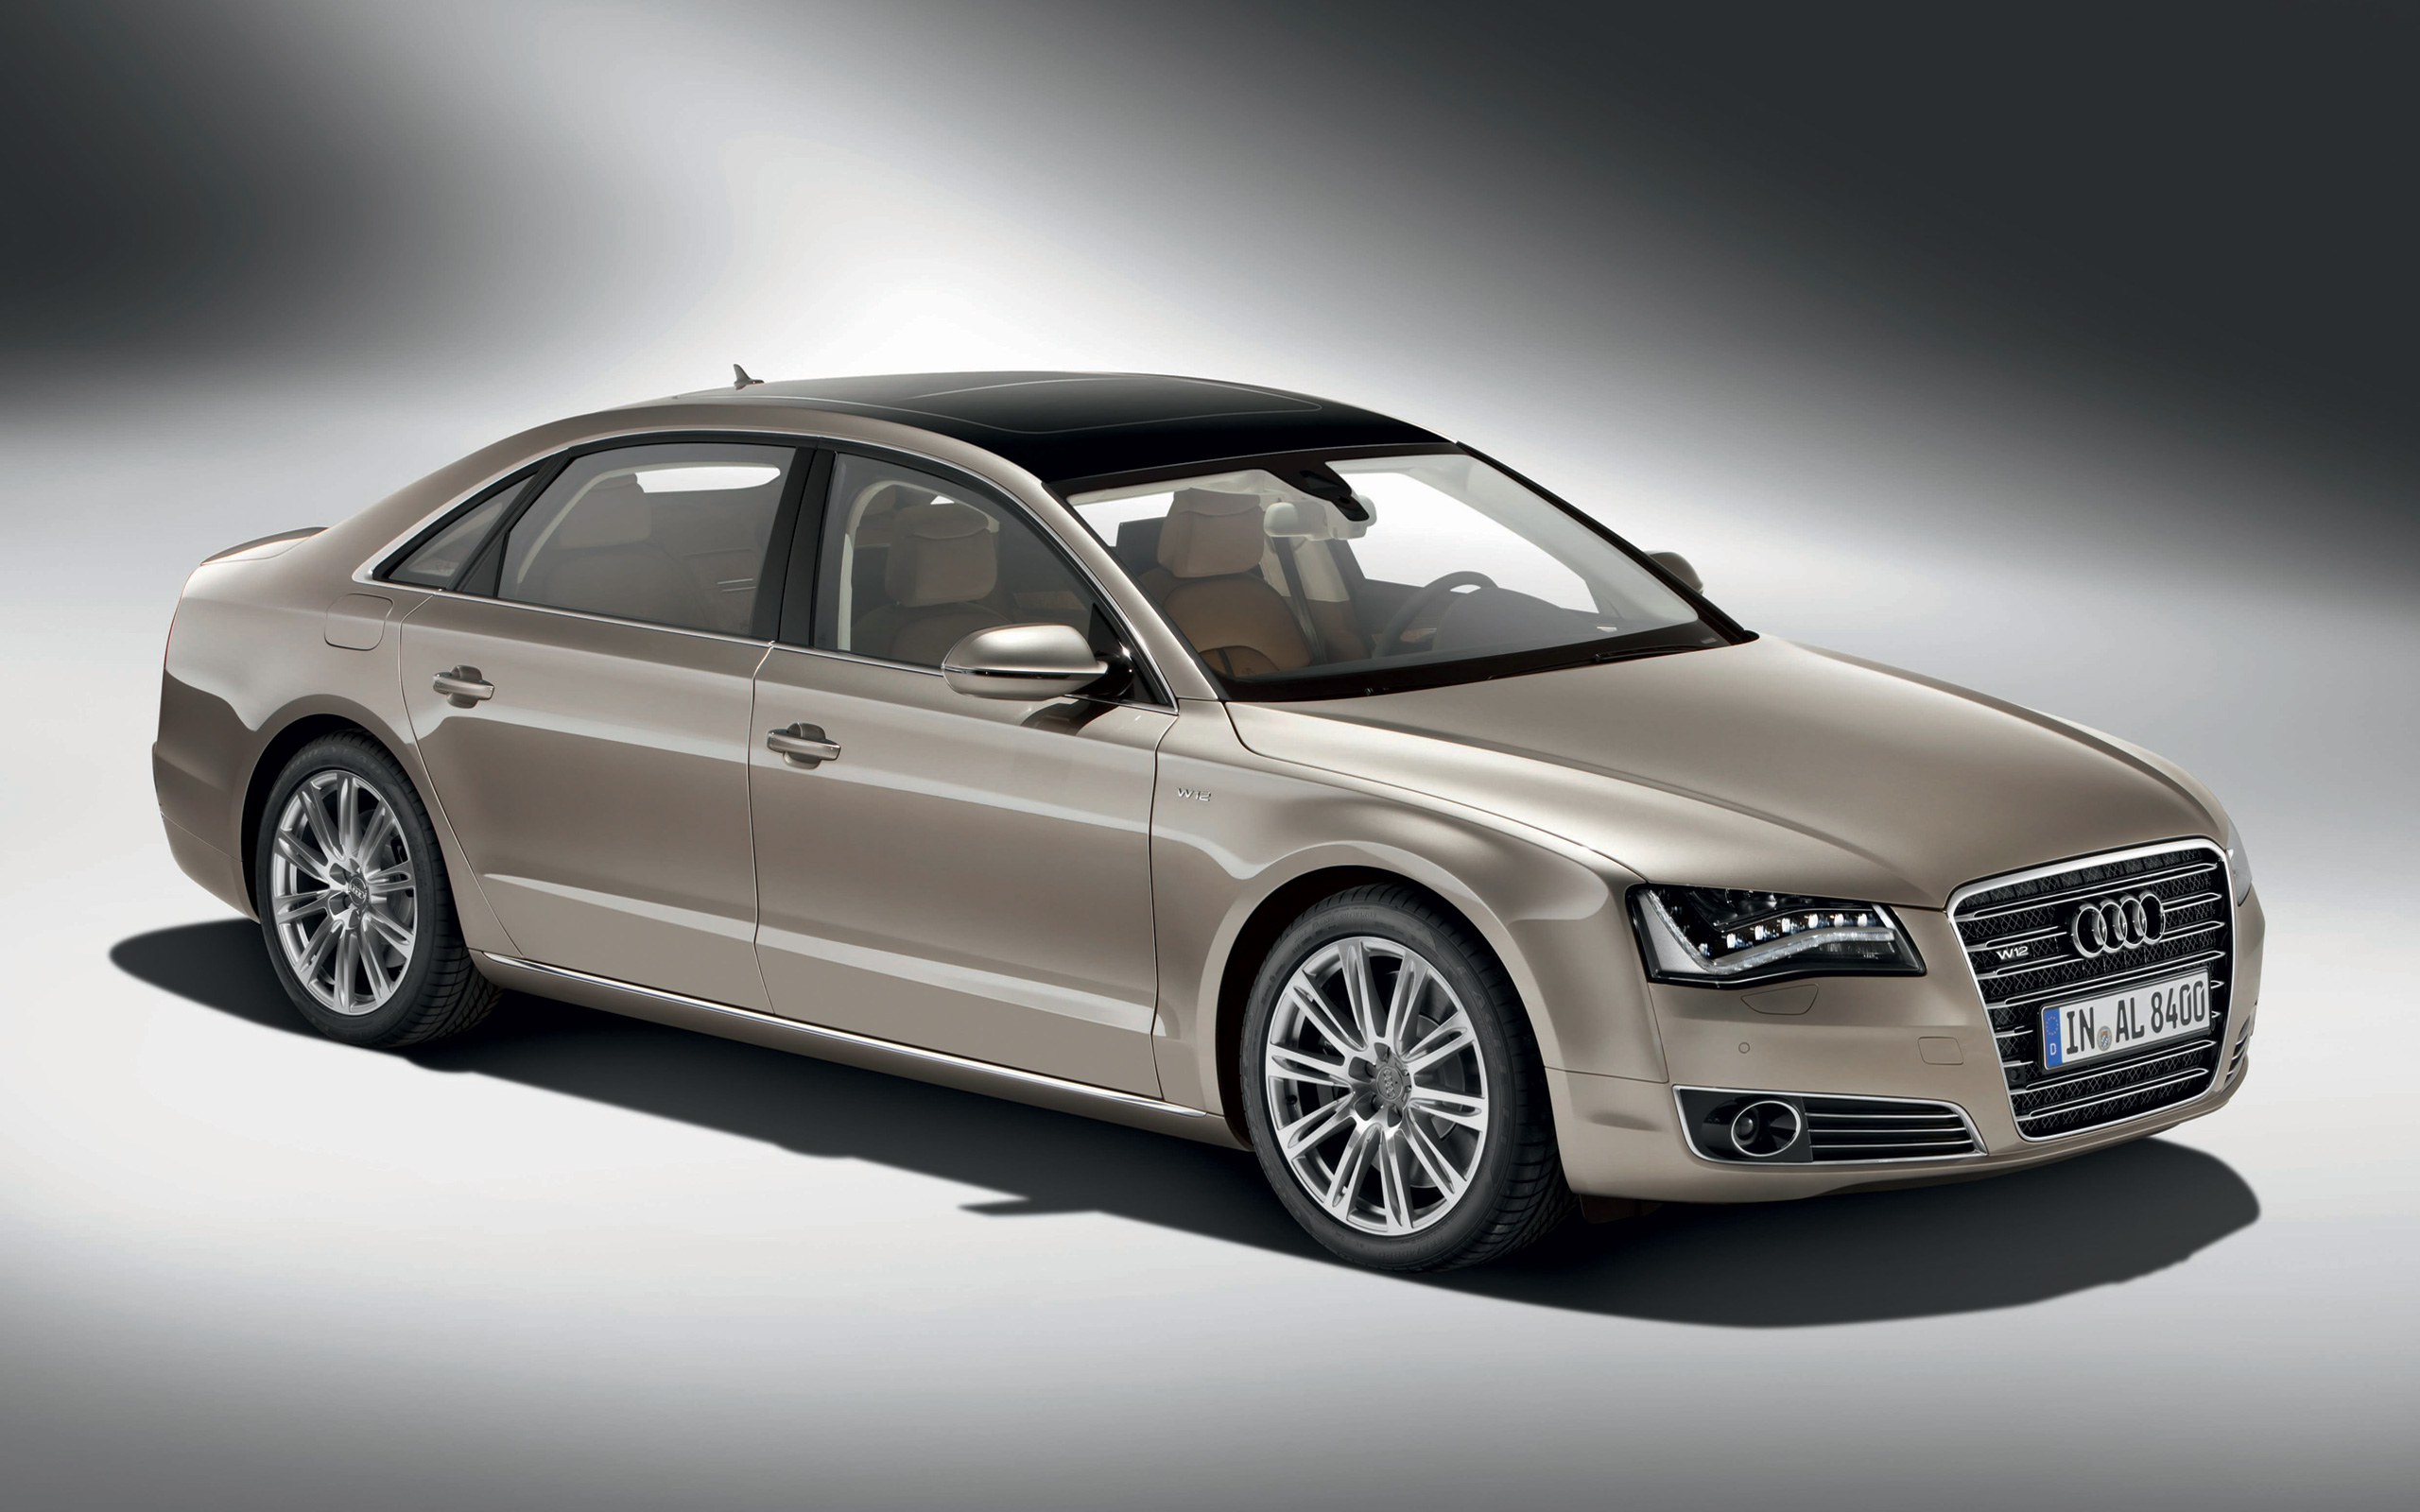 Audi A8 HD Wallpapers, Desktop Backgrounds